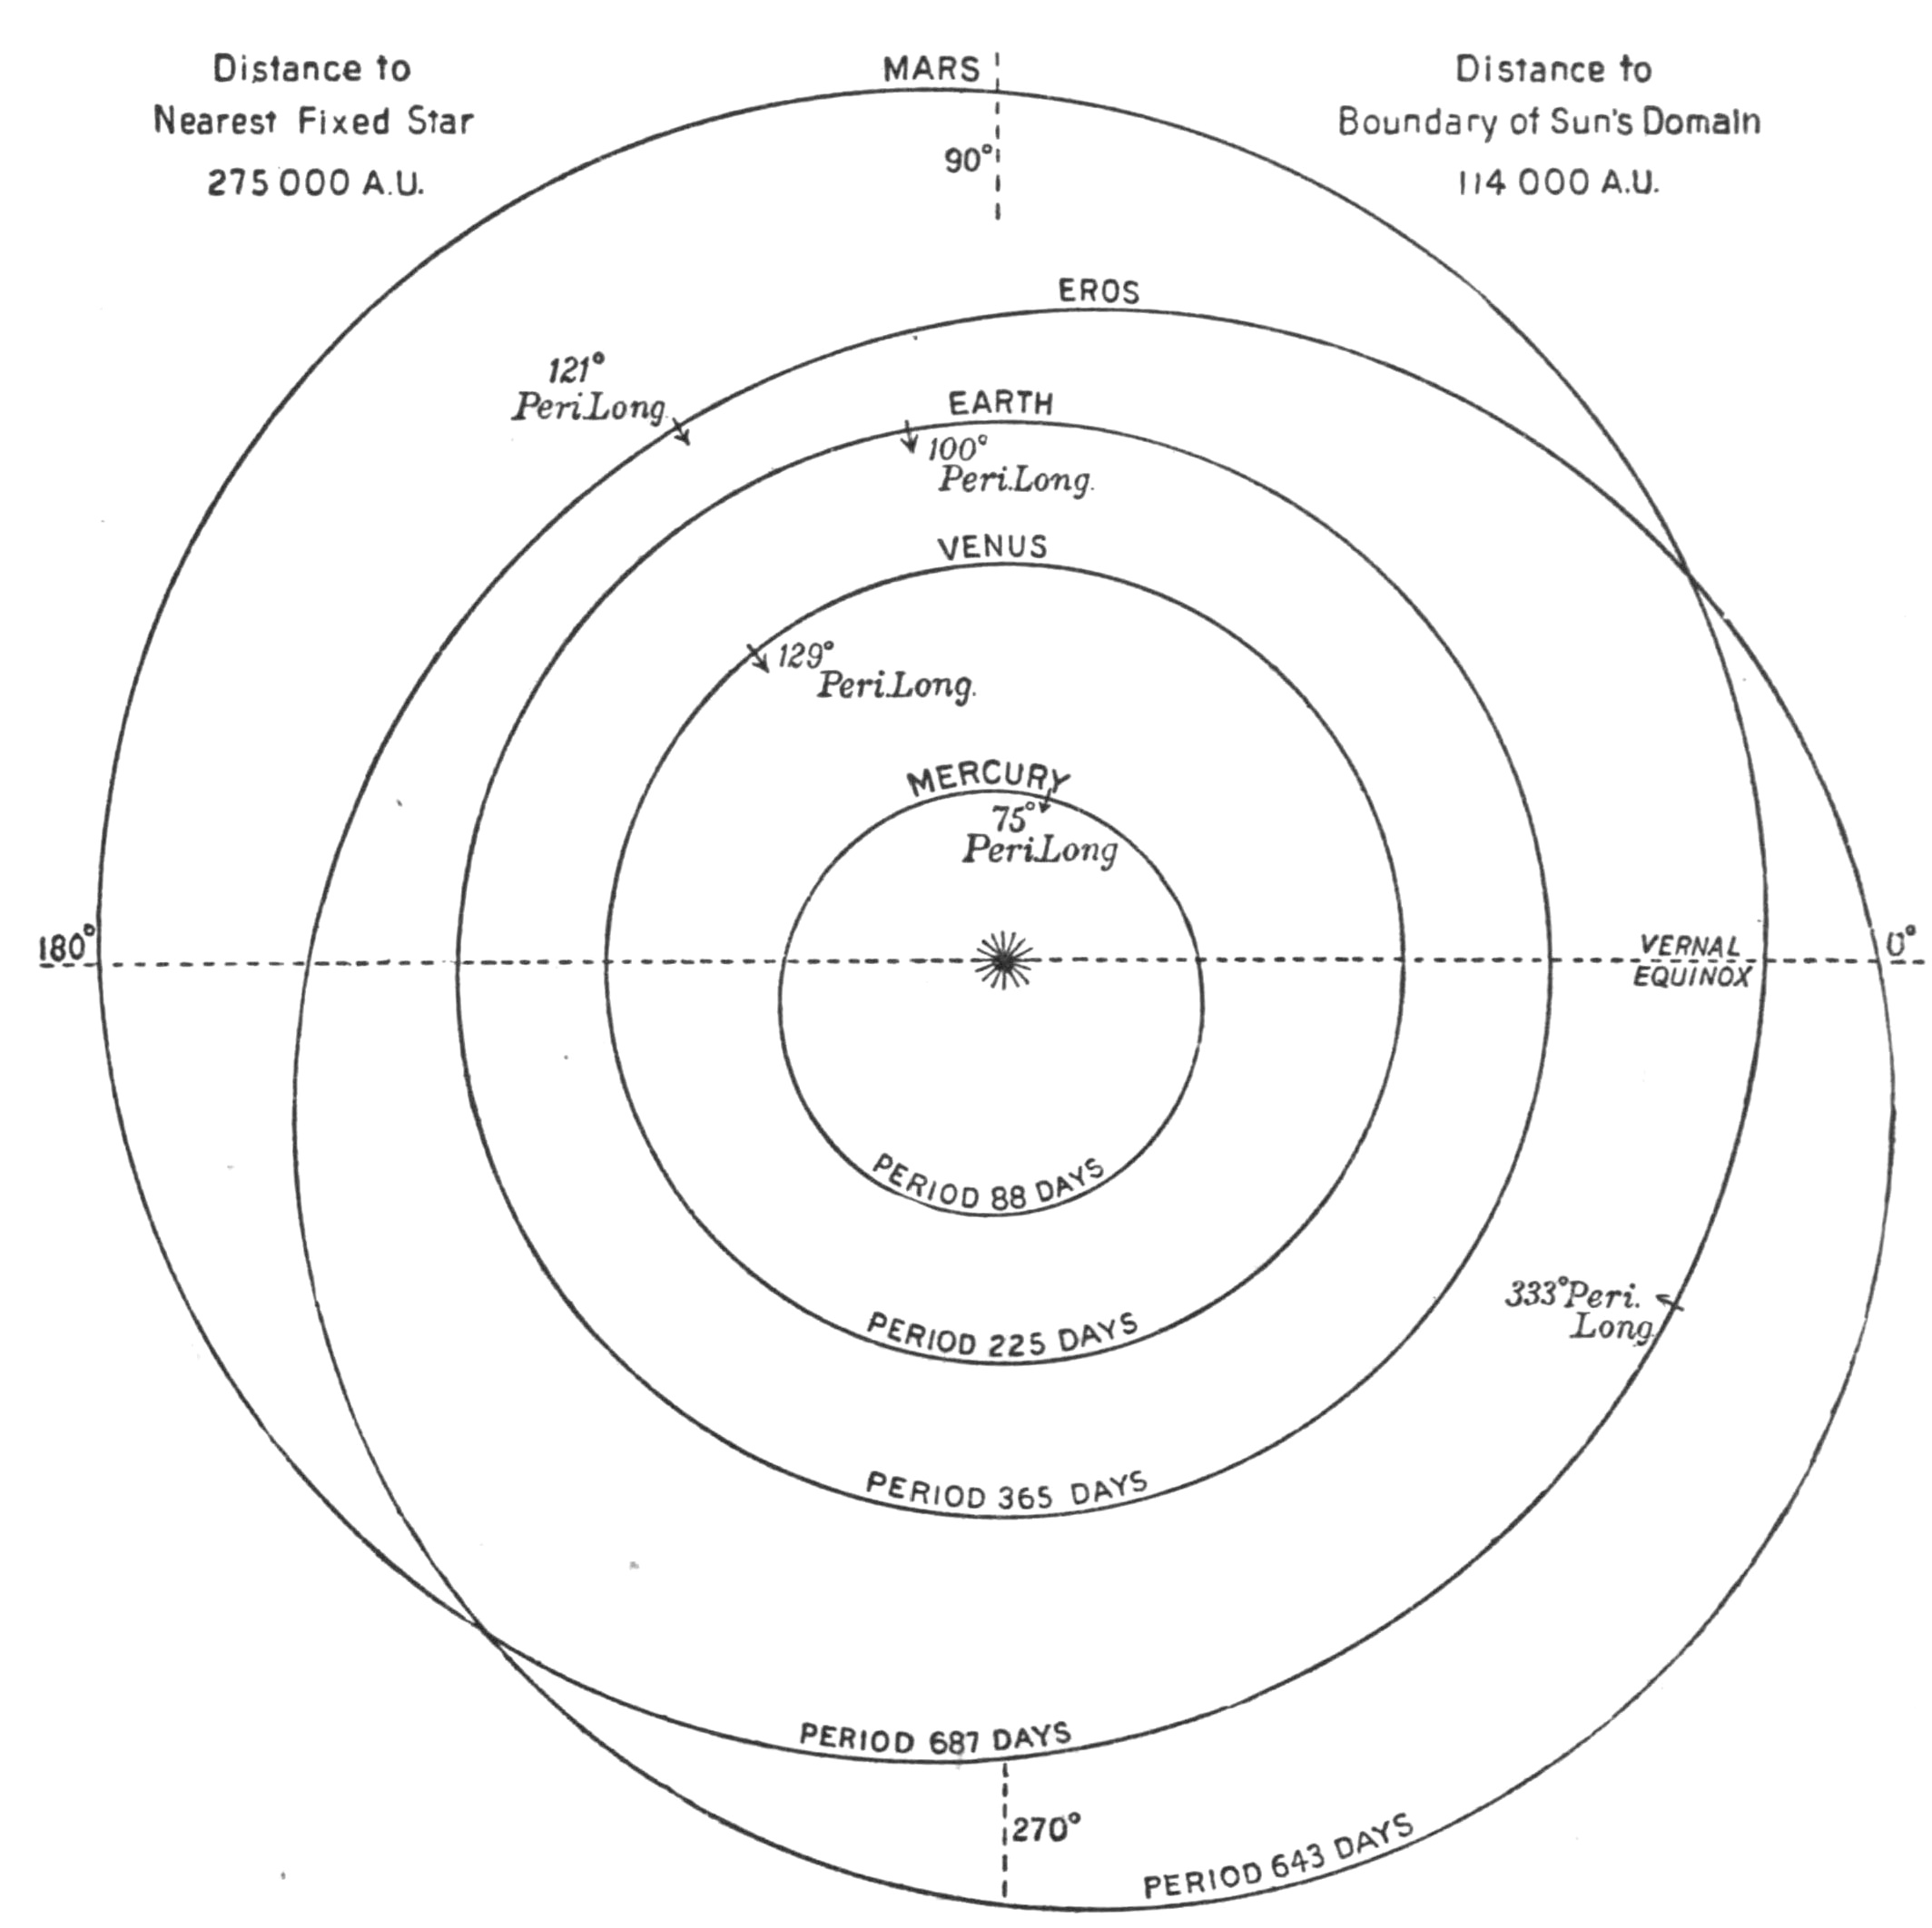 how do we see inner planets through the night in the round earth model